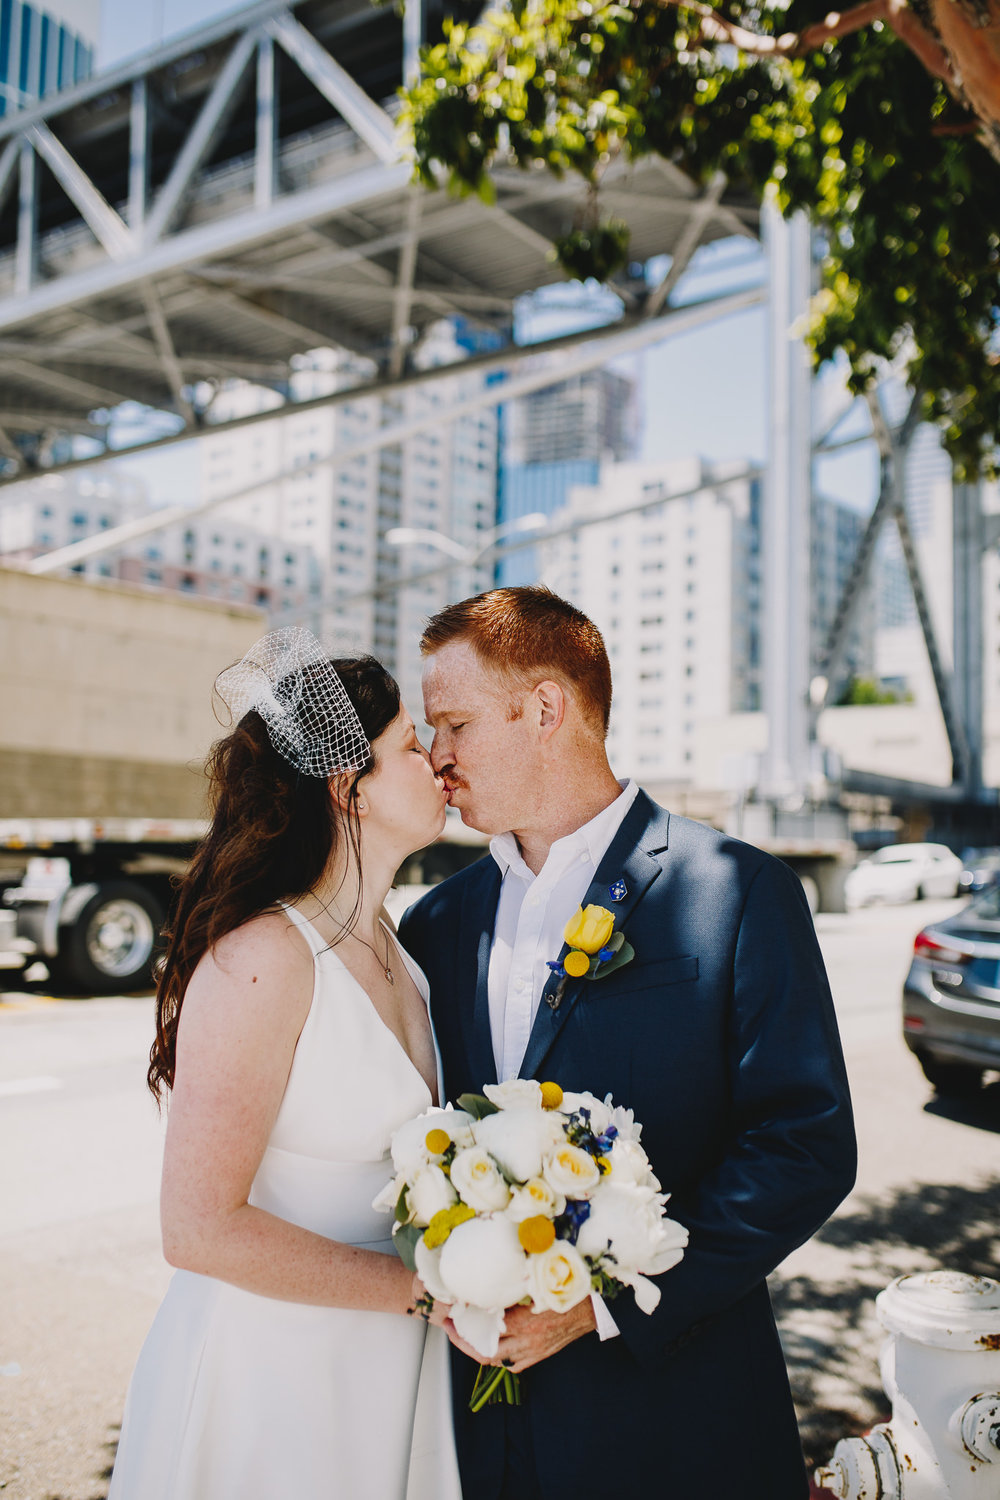 Archer Inspired Photography SF City Hall Elopement Wedding Lifestyle Documentary Affordable Photographer-332.jpg